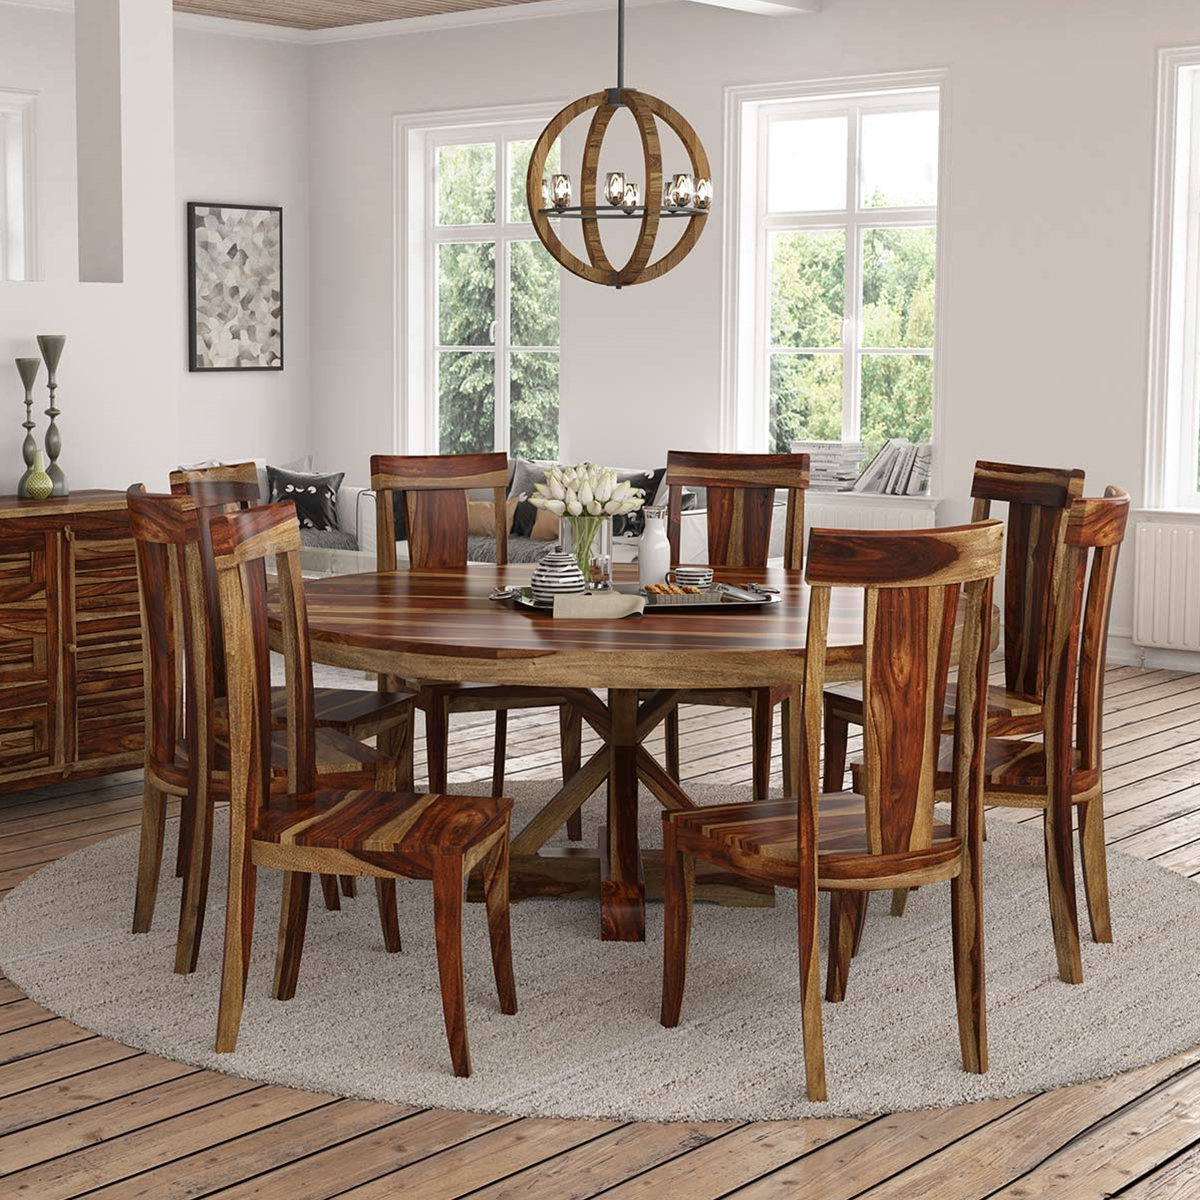 "2020 Bedfo 3 Piece Dining Sets Within Bedford X Pedestal Rustic 72"" Round Dining Table With 8 Chairs Set (View 2 of 25)"